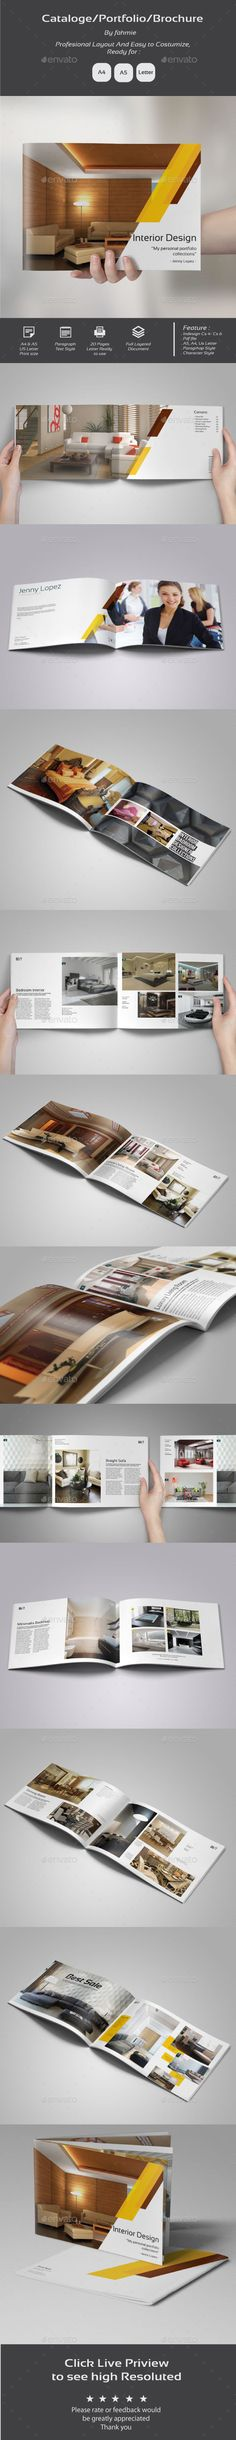 Multipurpose Portfolio #portfolio #interiors Download http://graphicriver.net/item/multipurpose-portfolio/11895294